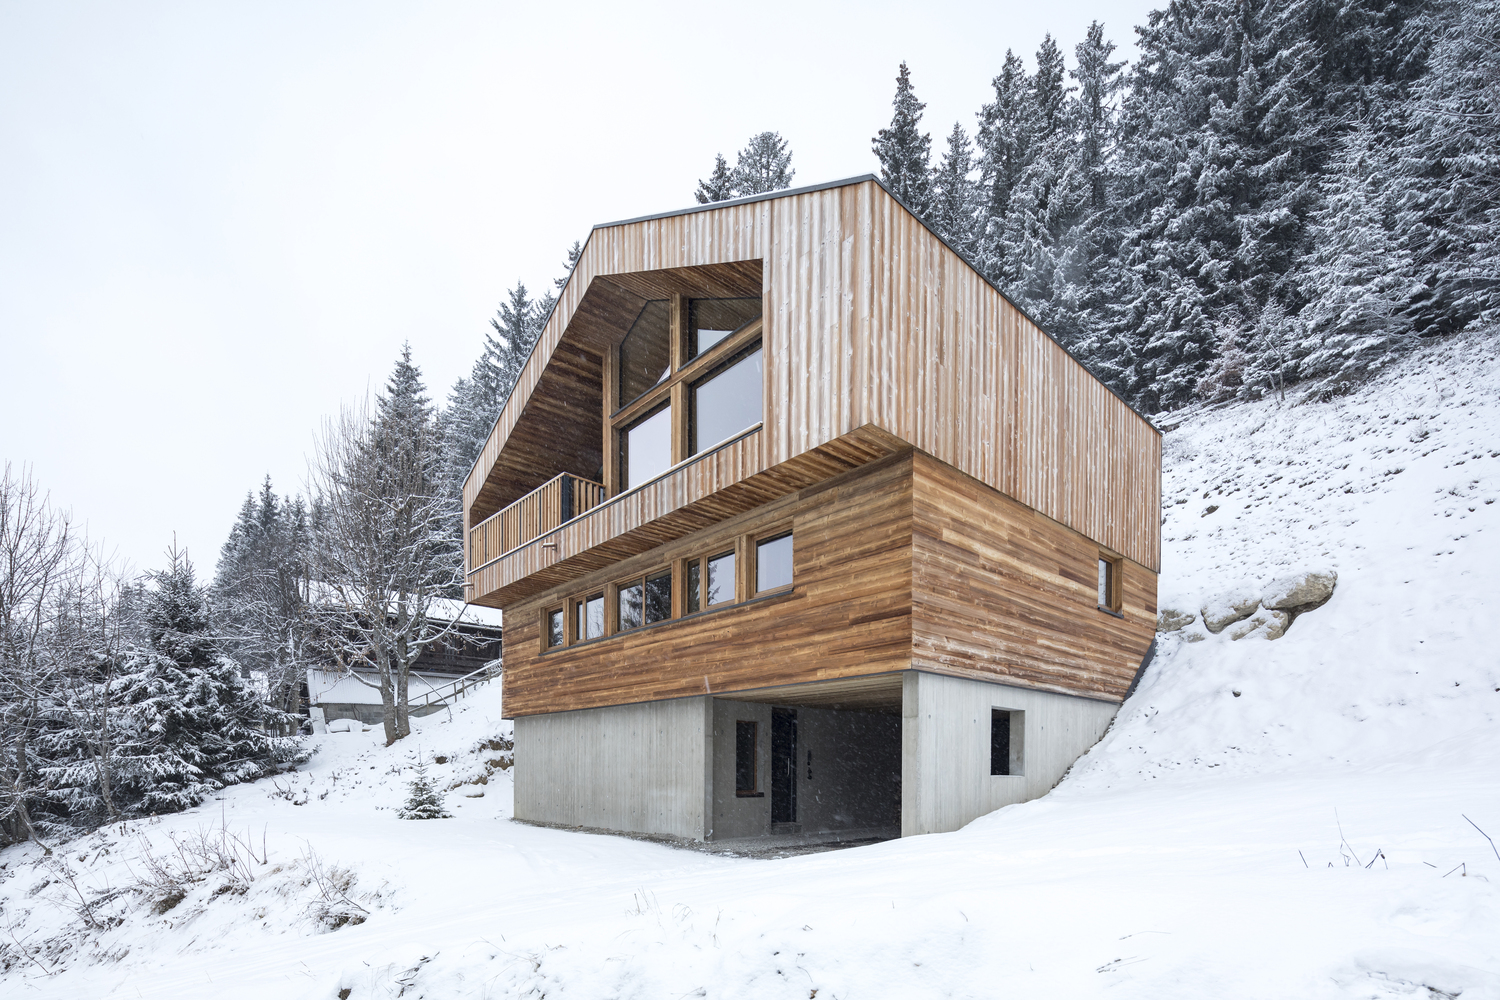 Studio Razavi Architecture 39 S 39 Mountain House 39 Avoids